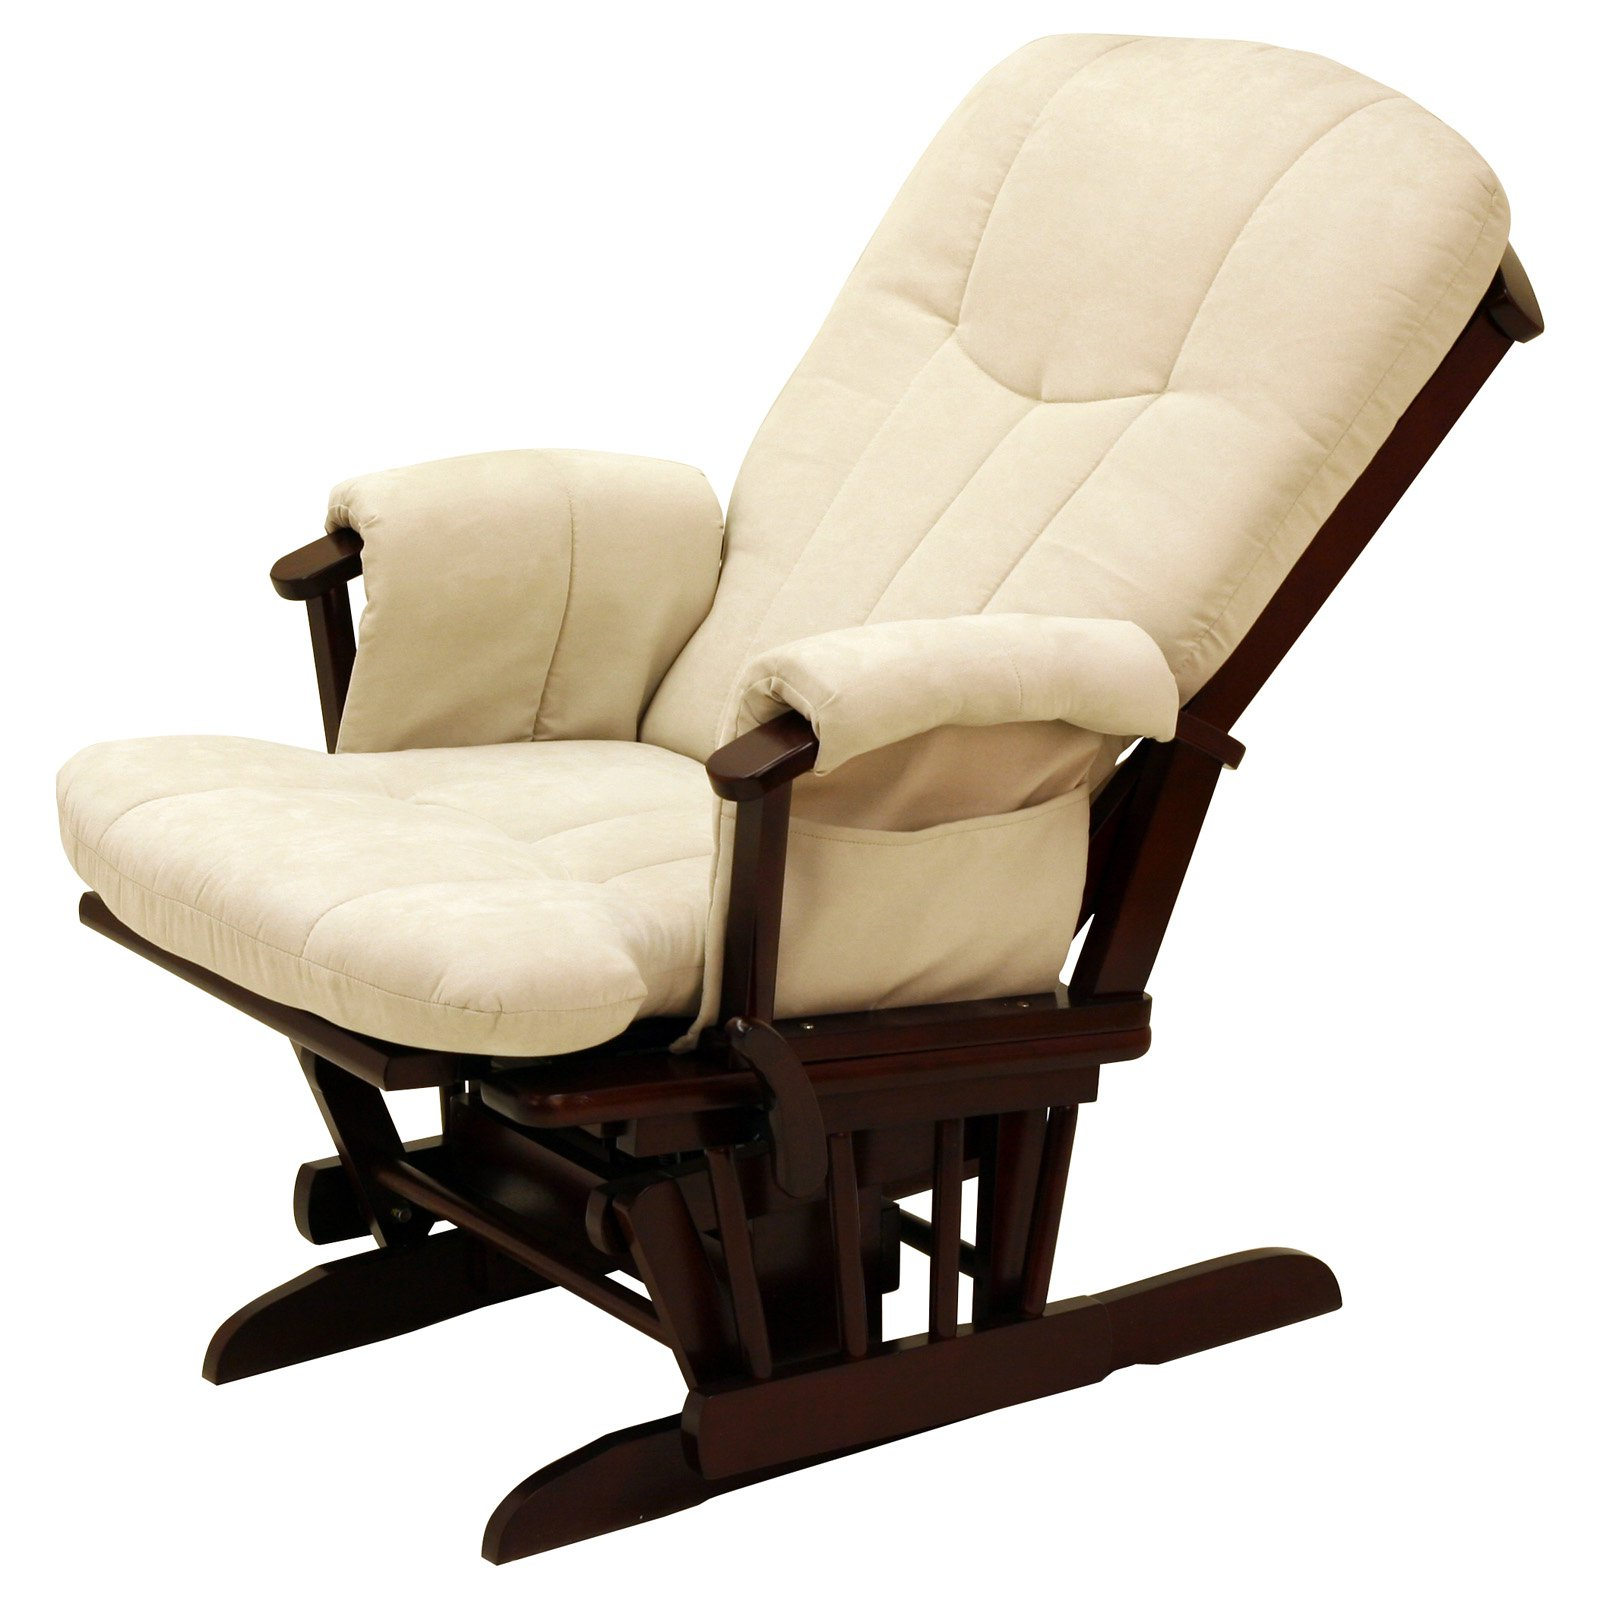 small rocking chair for nursery